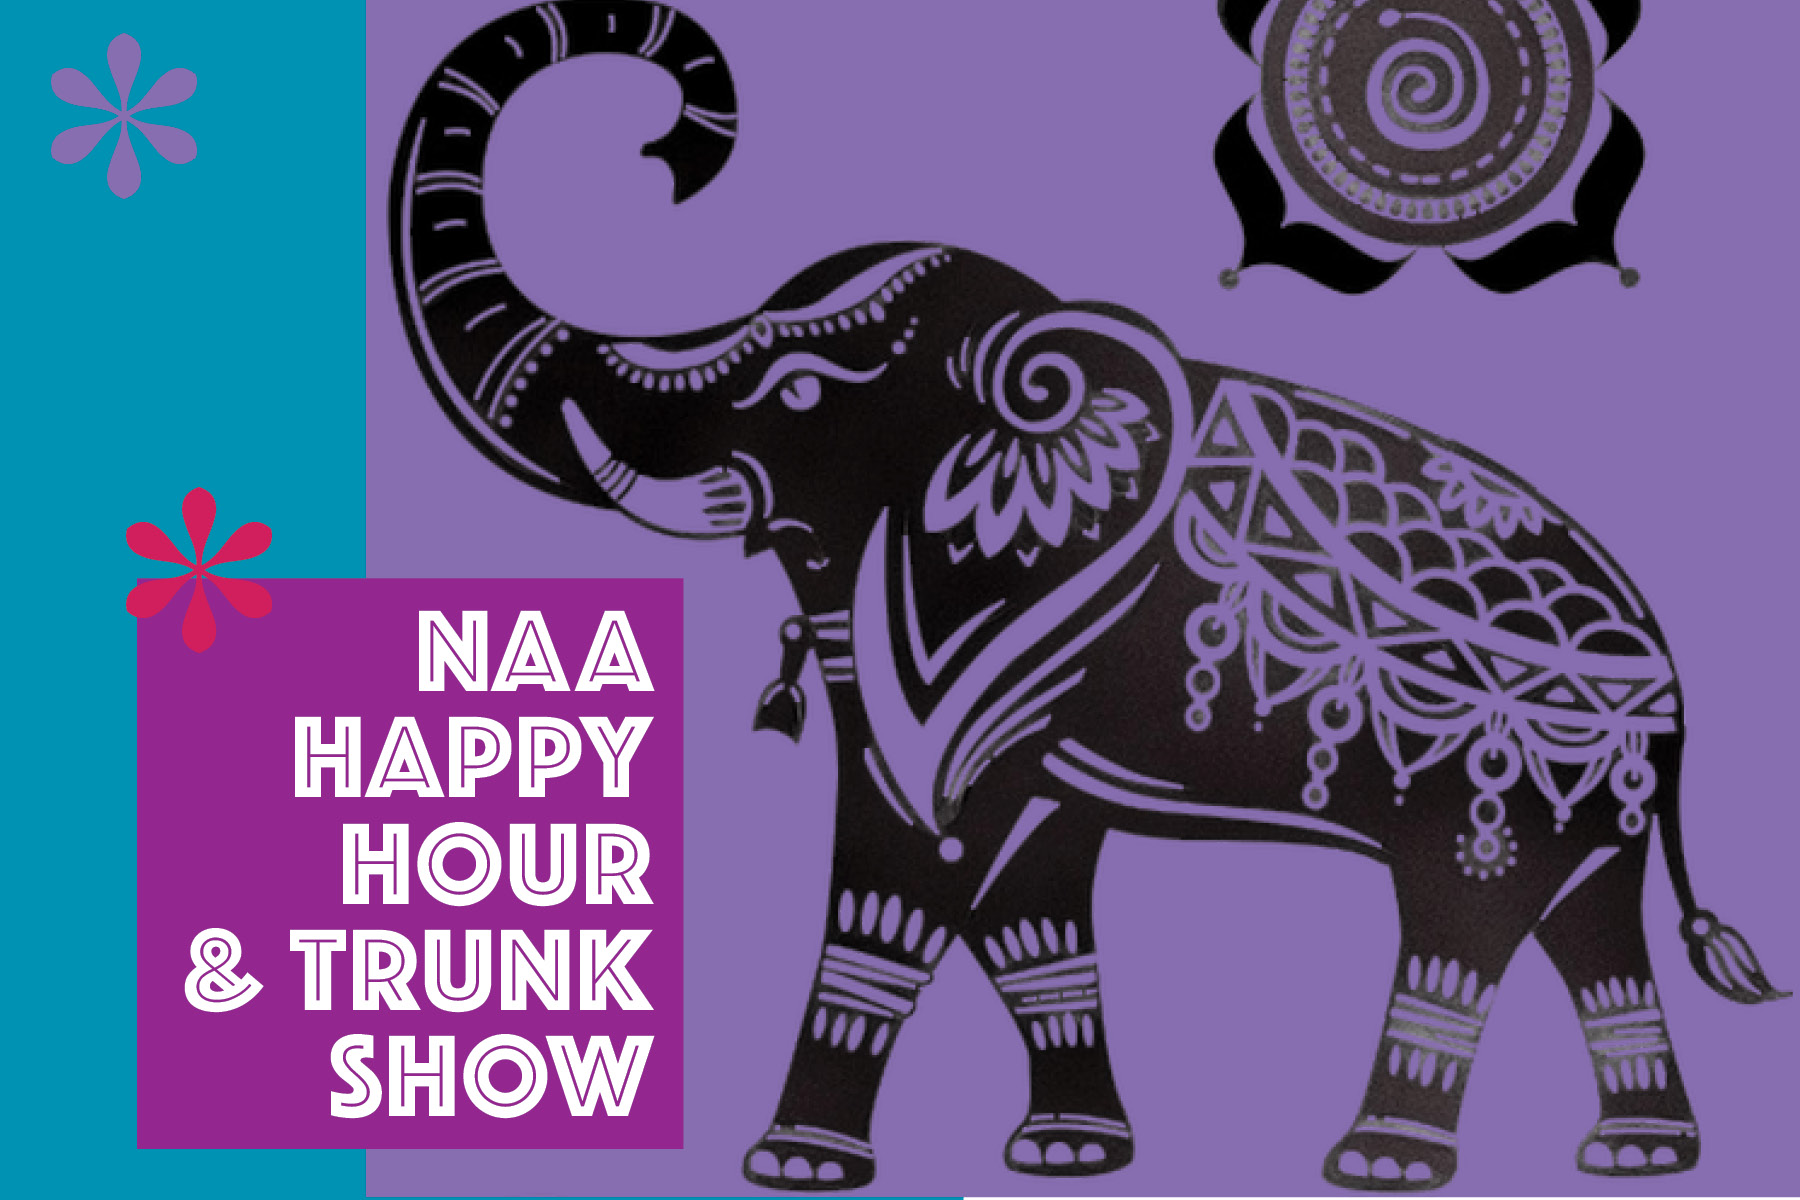 Happy Hour Trunk Show 2021